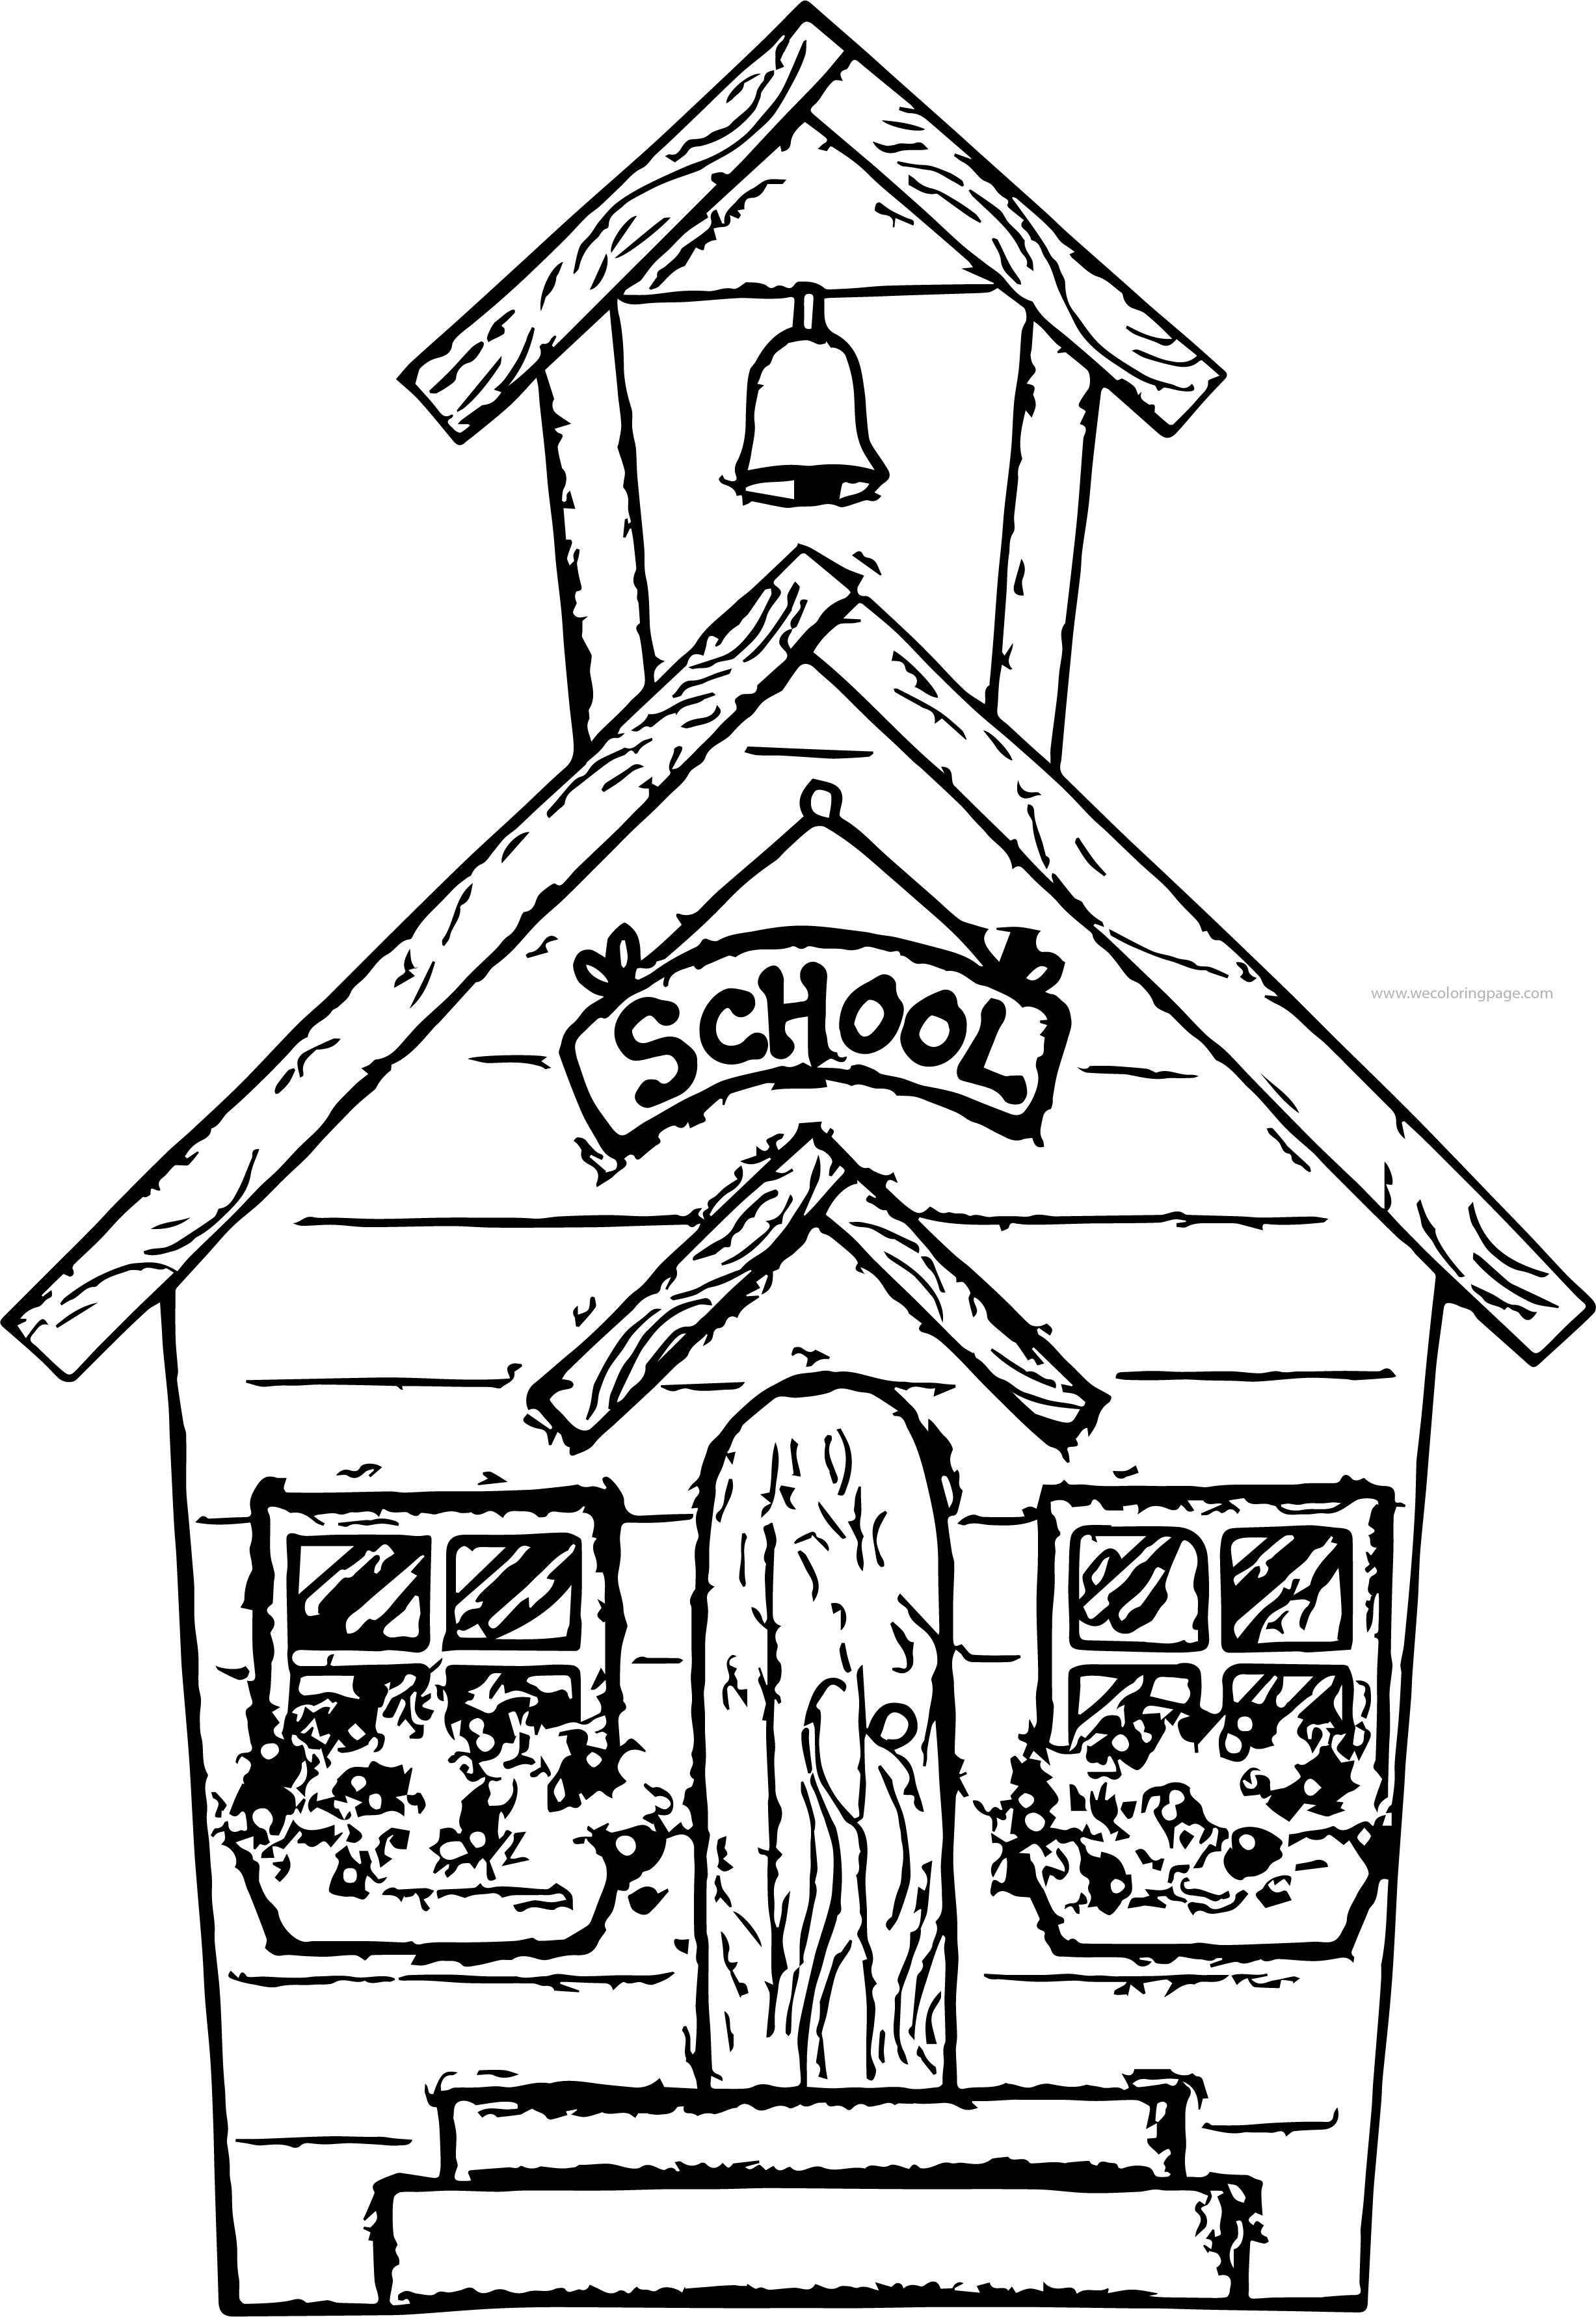 Summer School Coloring Page